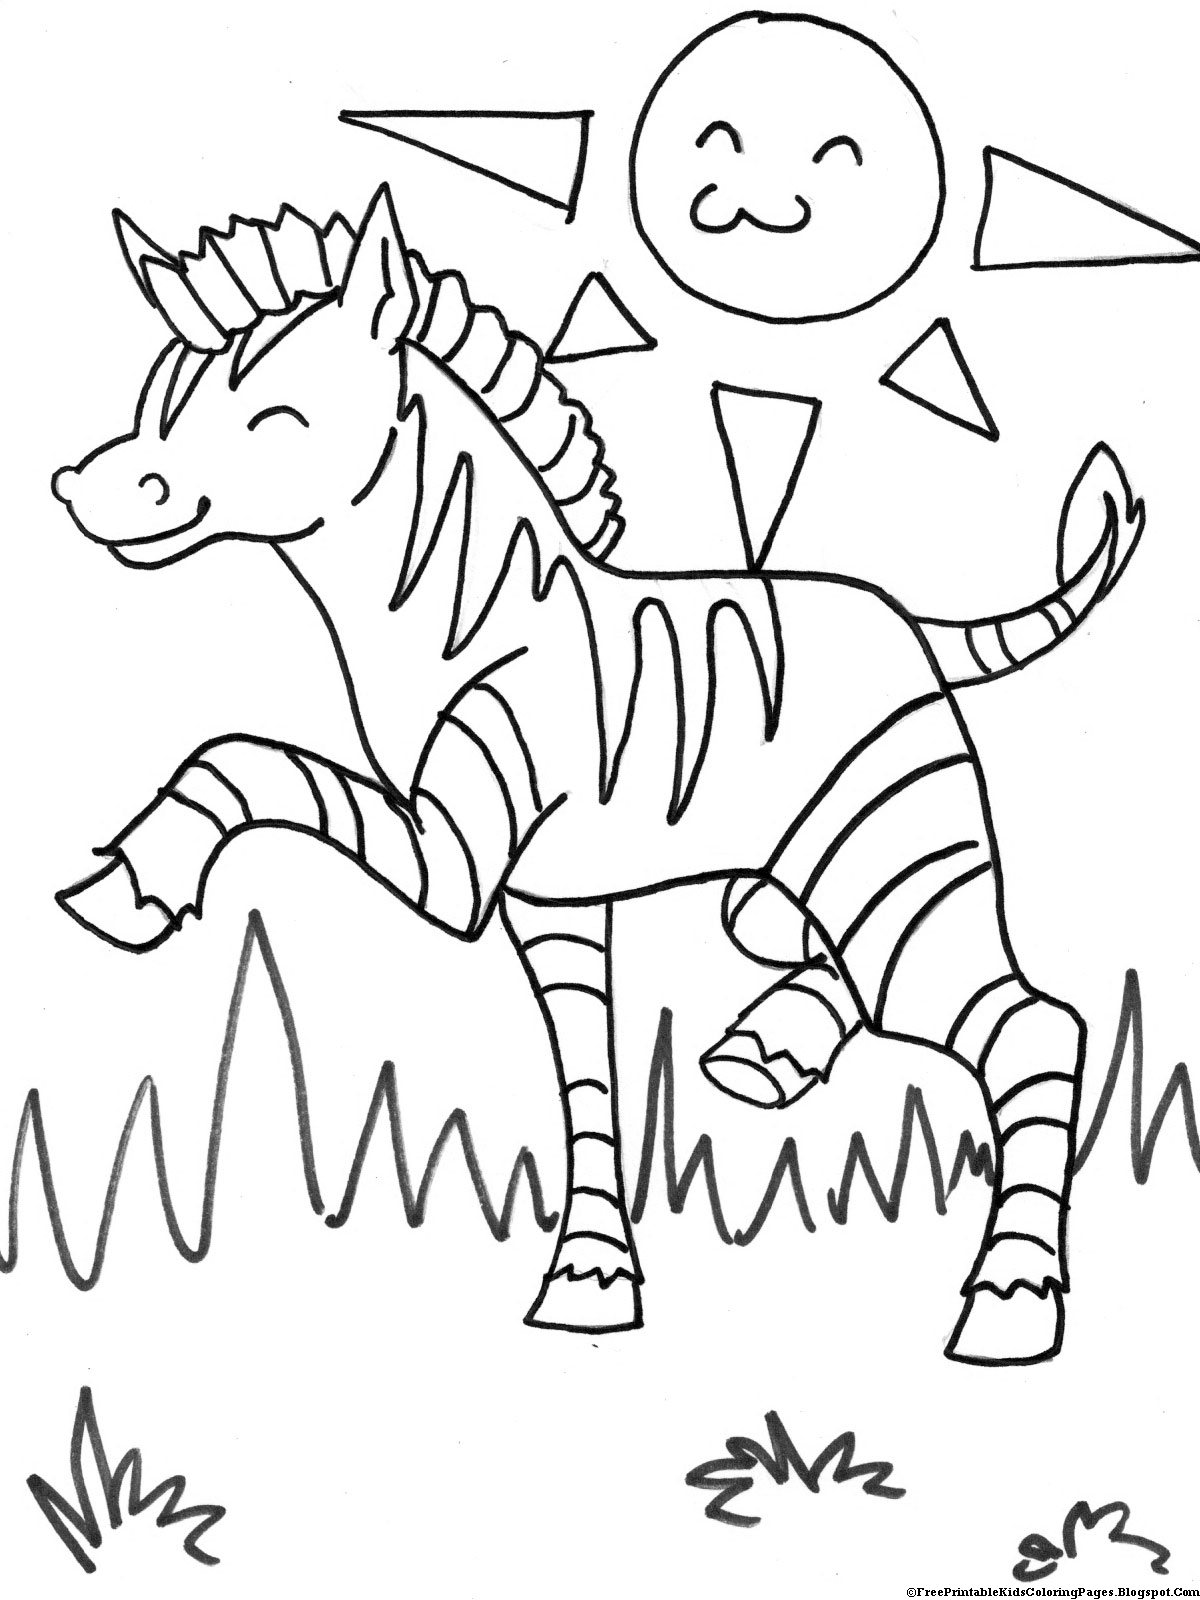 fun coloring pages to print 40 exclusive kids coloring pages ideas we need fun coloring pages fun to print